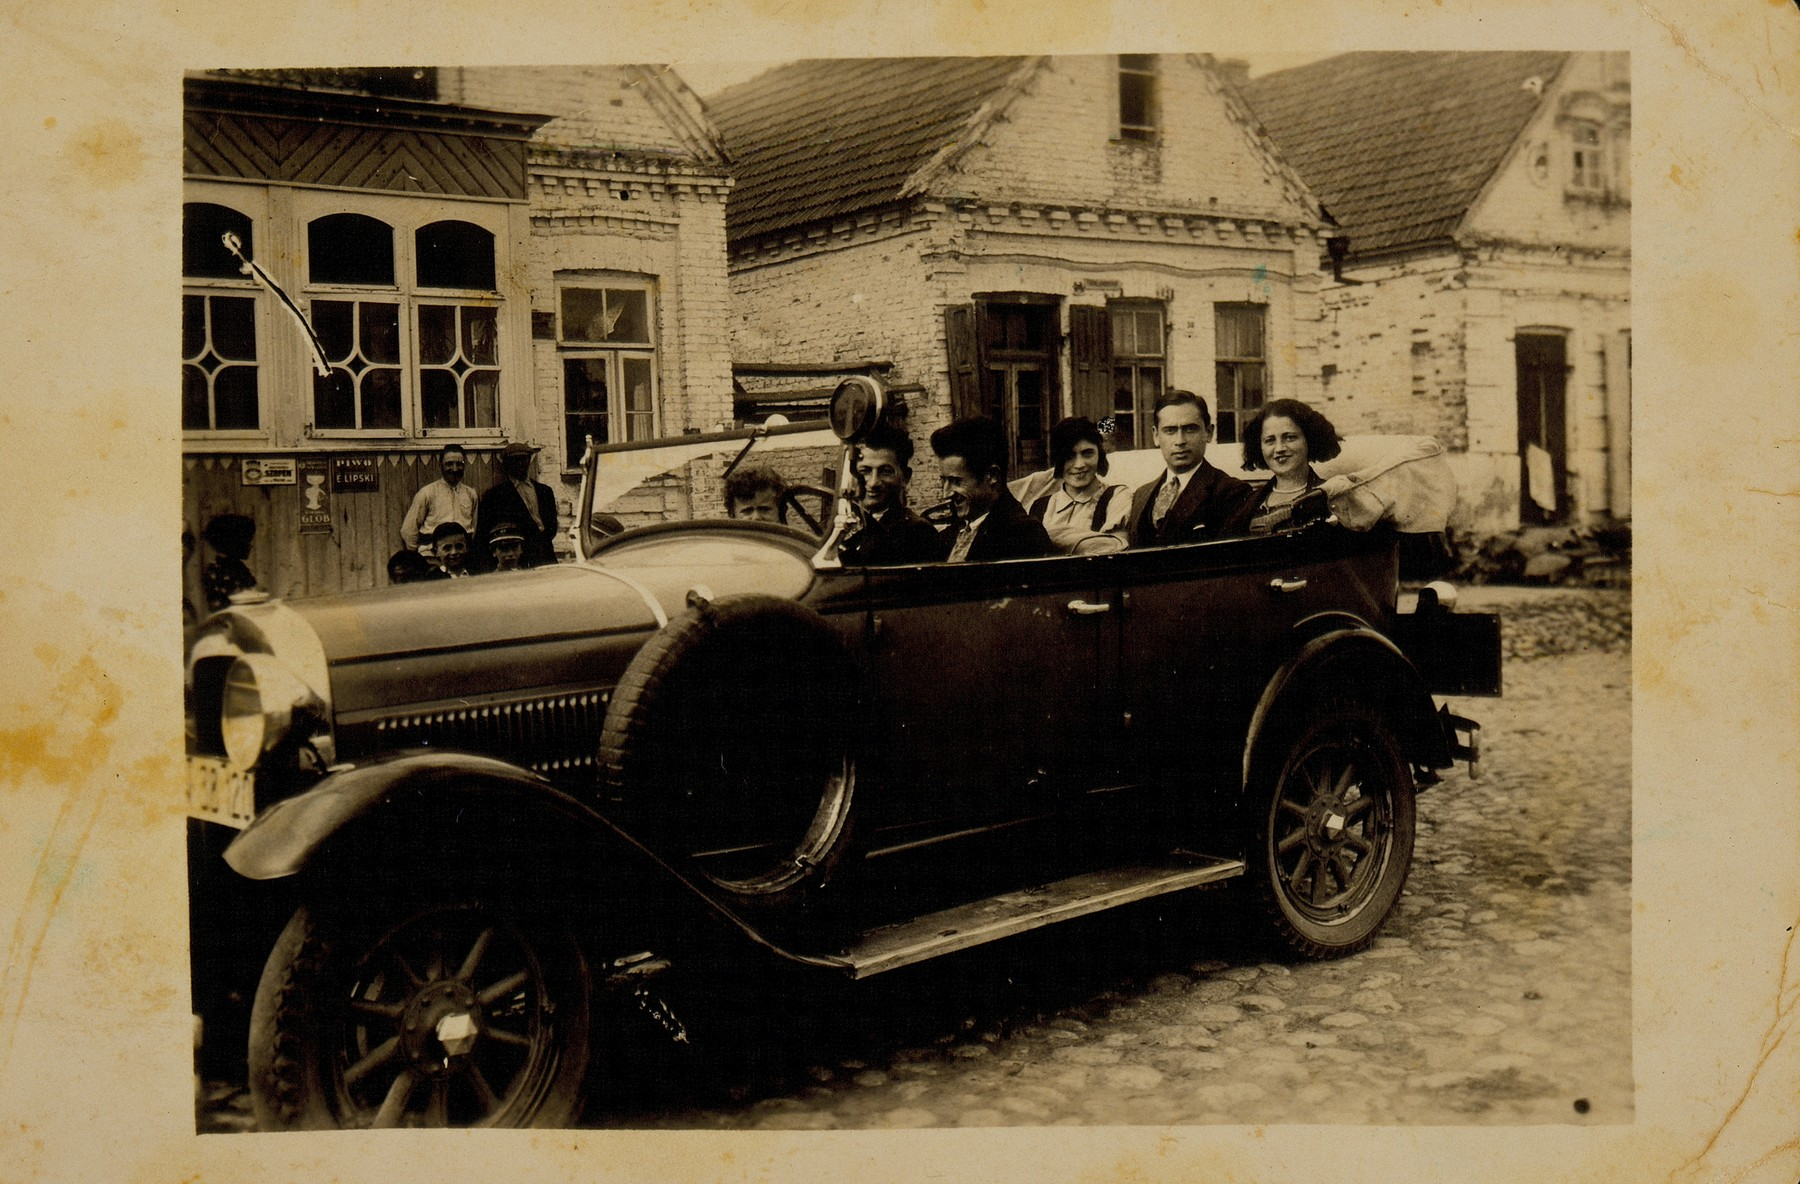 A visitor to Eisiskes takes his friends for a car ride in the early 1930s.   Seated next to the driver is Leibke Sonenson and his nephew Benyamin.  In the back seat (left to right) are Matle Sonenson Shereshefski, Shaul Dubrowicz and the driver's friend.  The little boy without the hat on the extreme left is Leibke Kaganowicz (Leon Kahn).  The houses in the background belong to the Kaganowicz and Blacharowicz families.  Matle survived the war in Siberia; all the others, except for Leon, perished during the Holocaust.